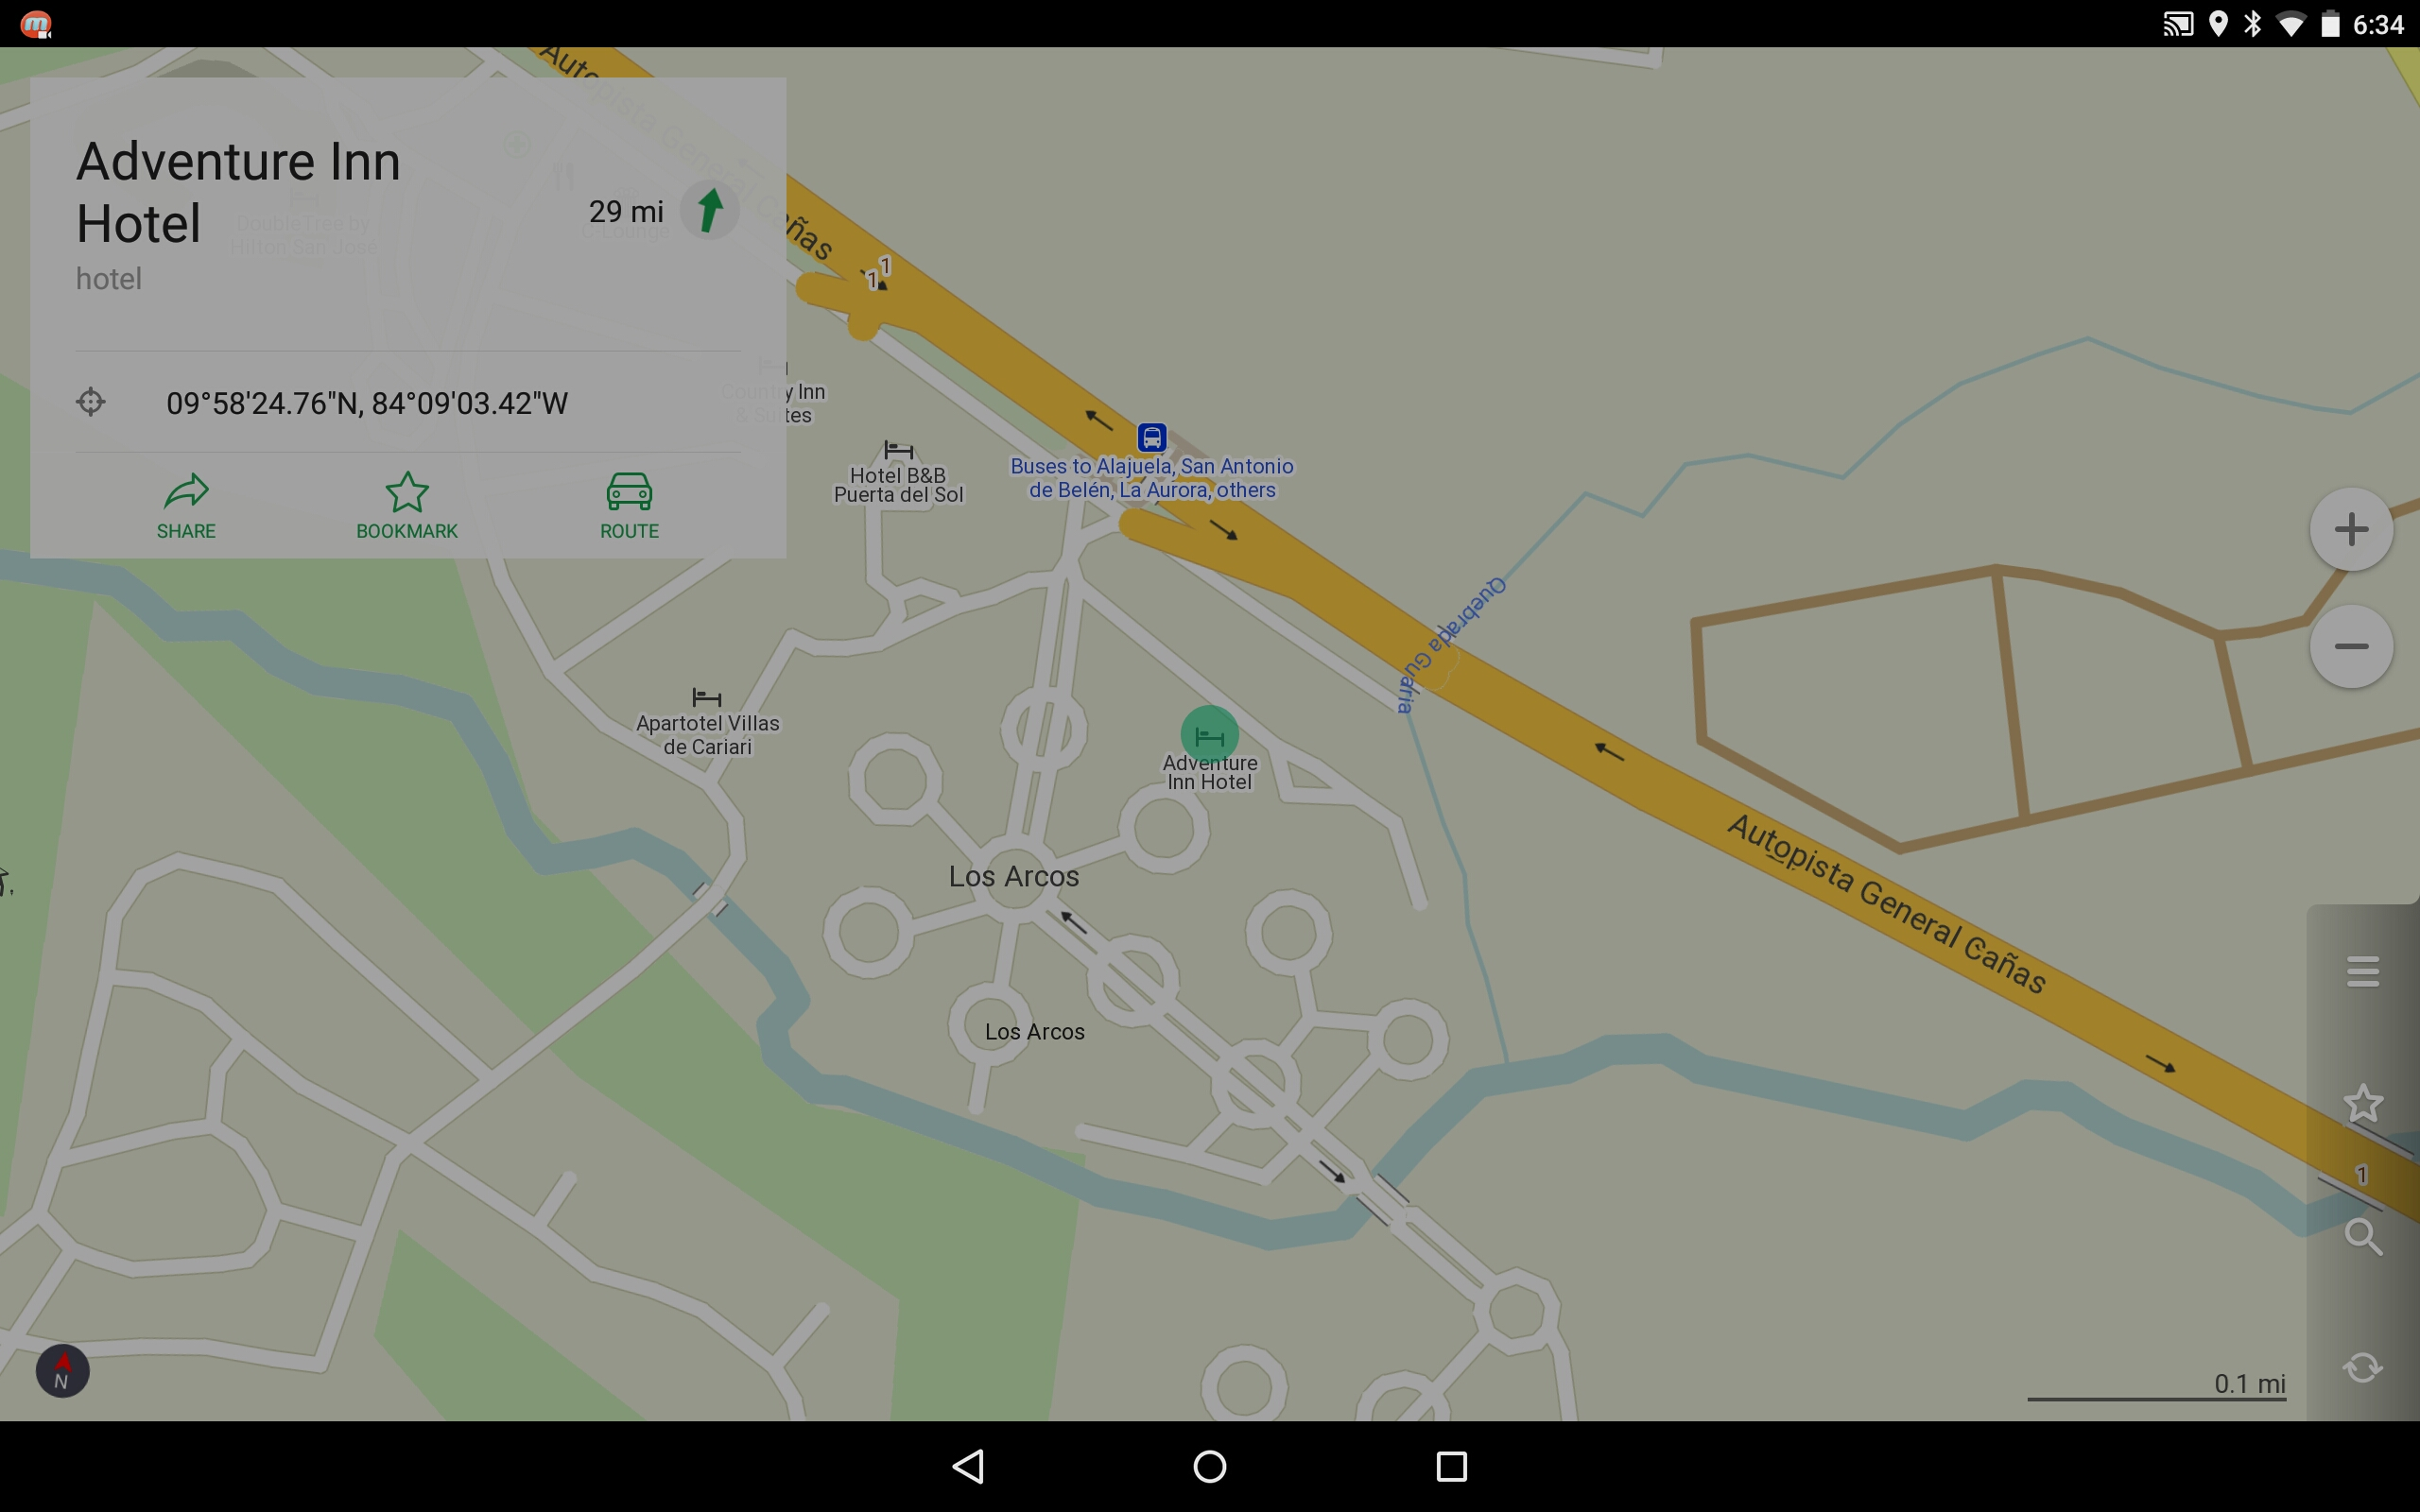 MAPSME A very handy offline map for travelers – Maps For Travelers